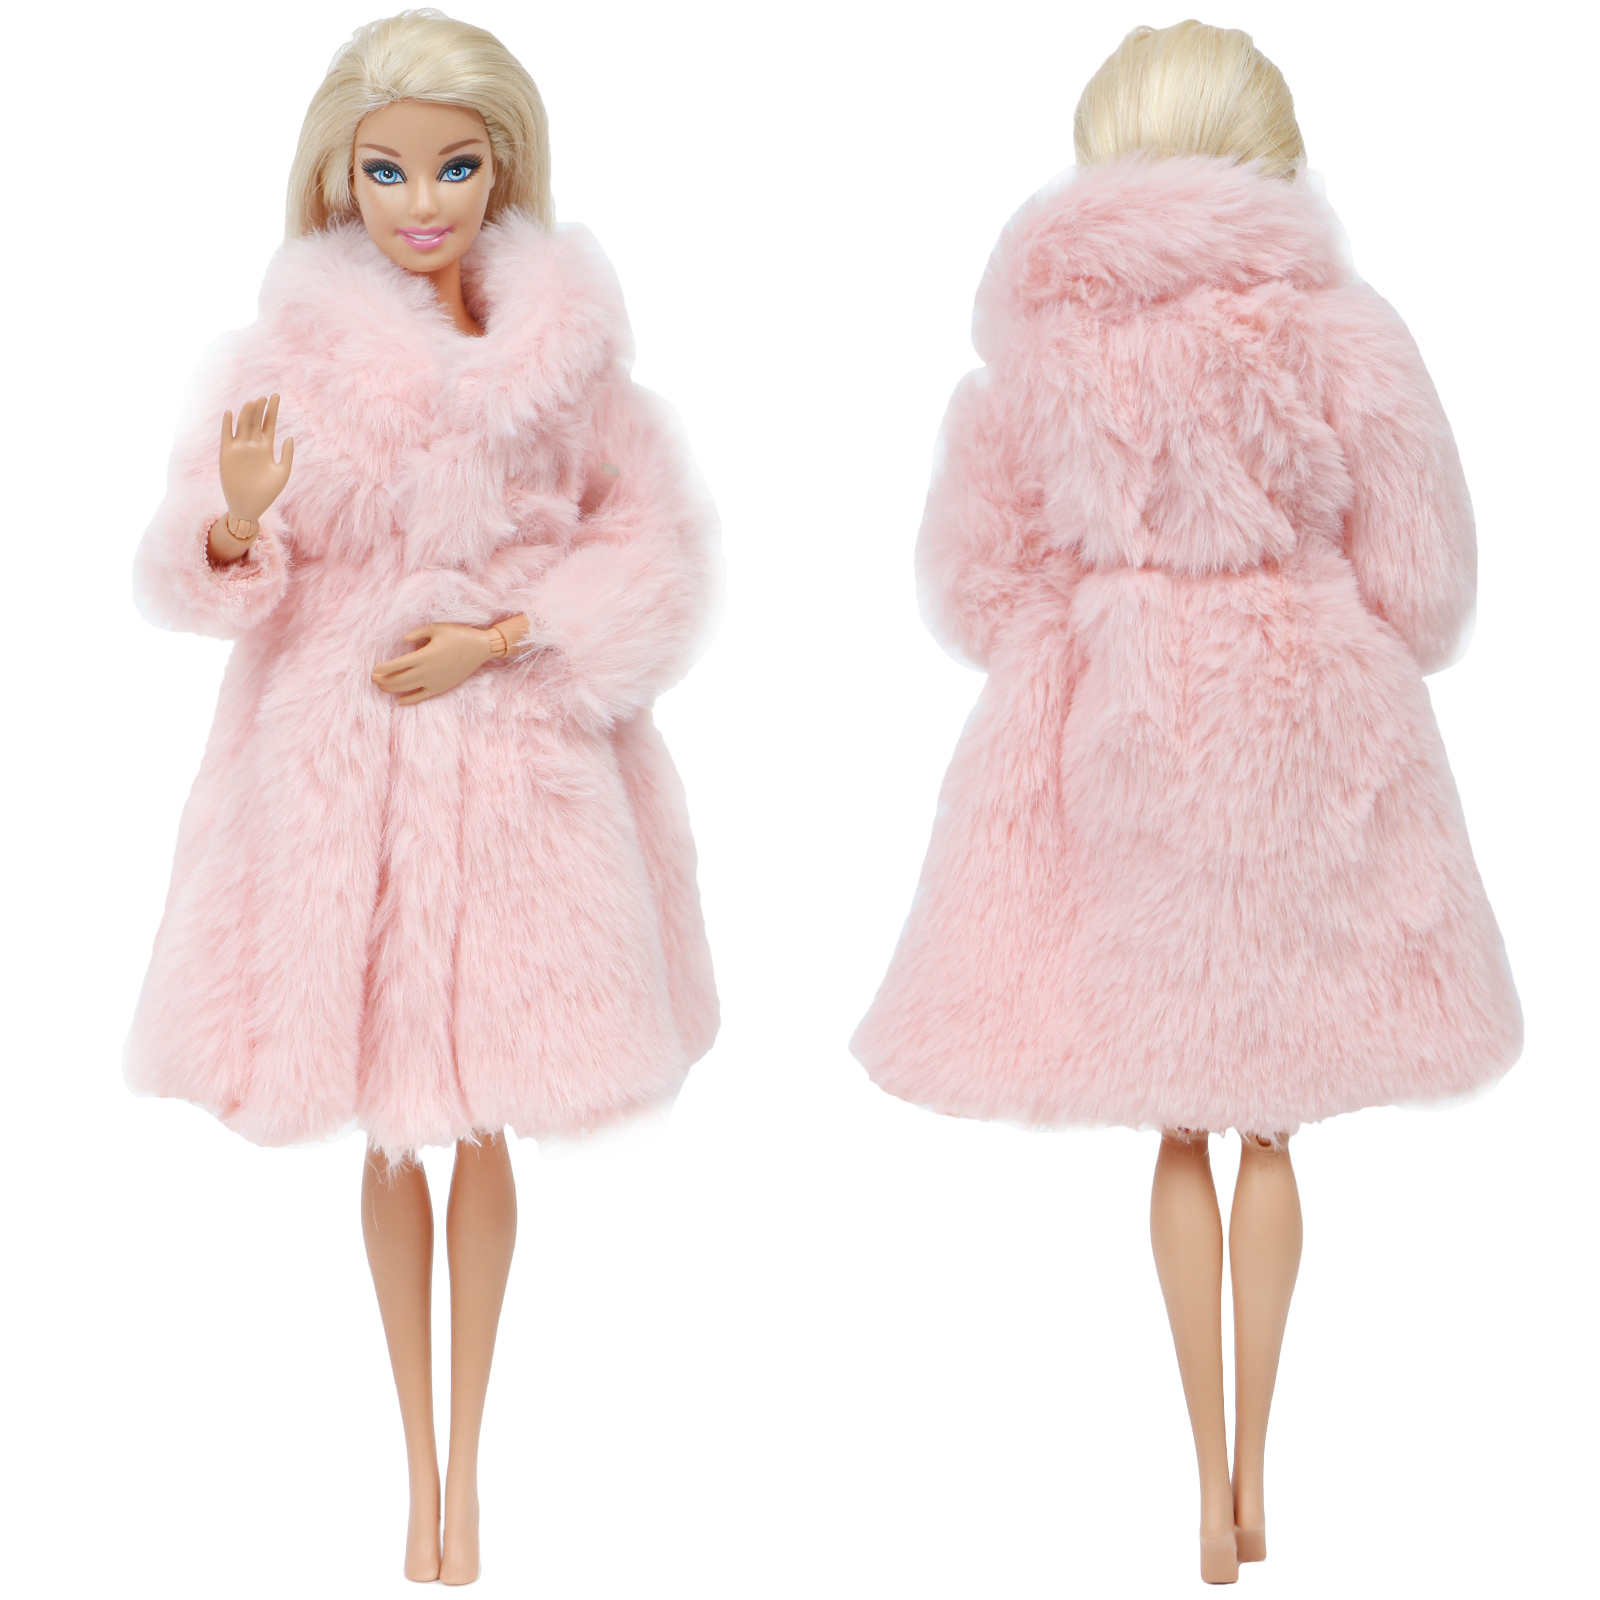 One Pcs Pink Wool Coat Noble Winter Wear High Quality Fashion Dress Accessories Clothes For Barbie Doll Dollhouse Kids Girl Toy